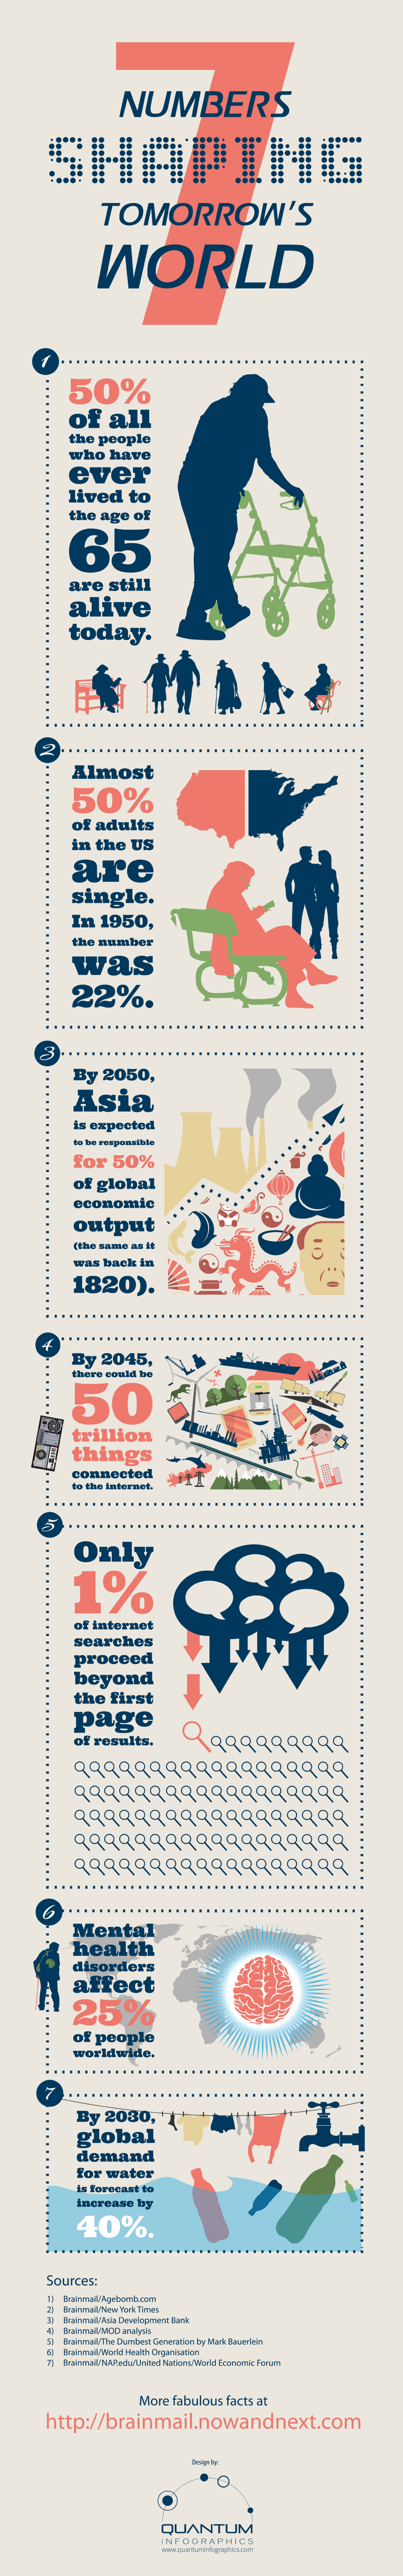 7 Numbers Shaping Tomorrow's World Infographic